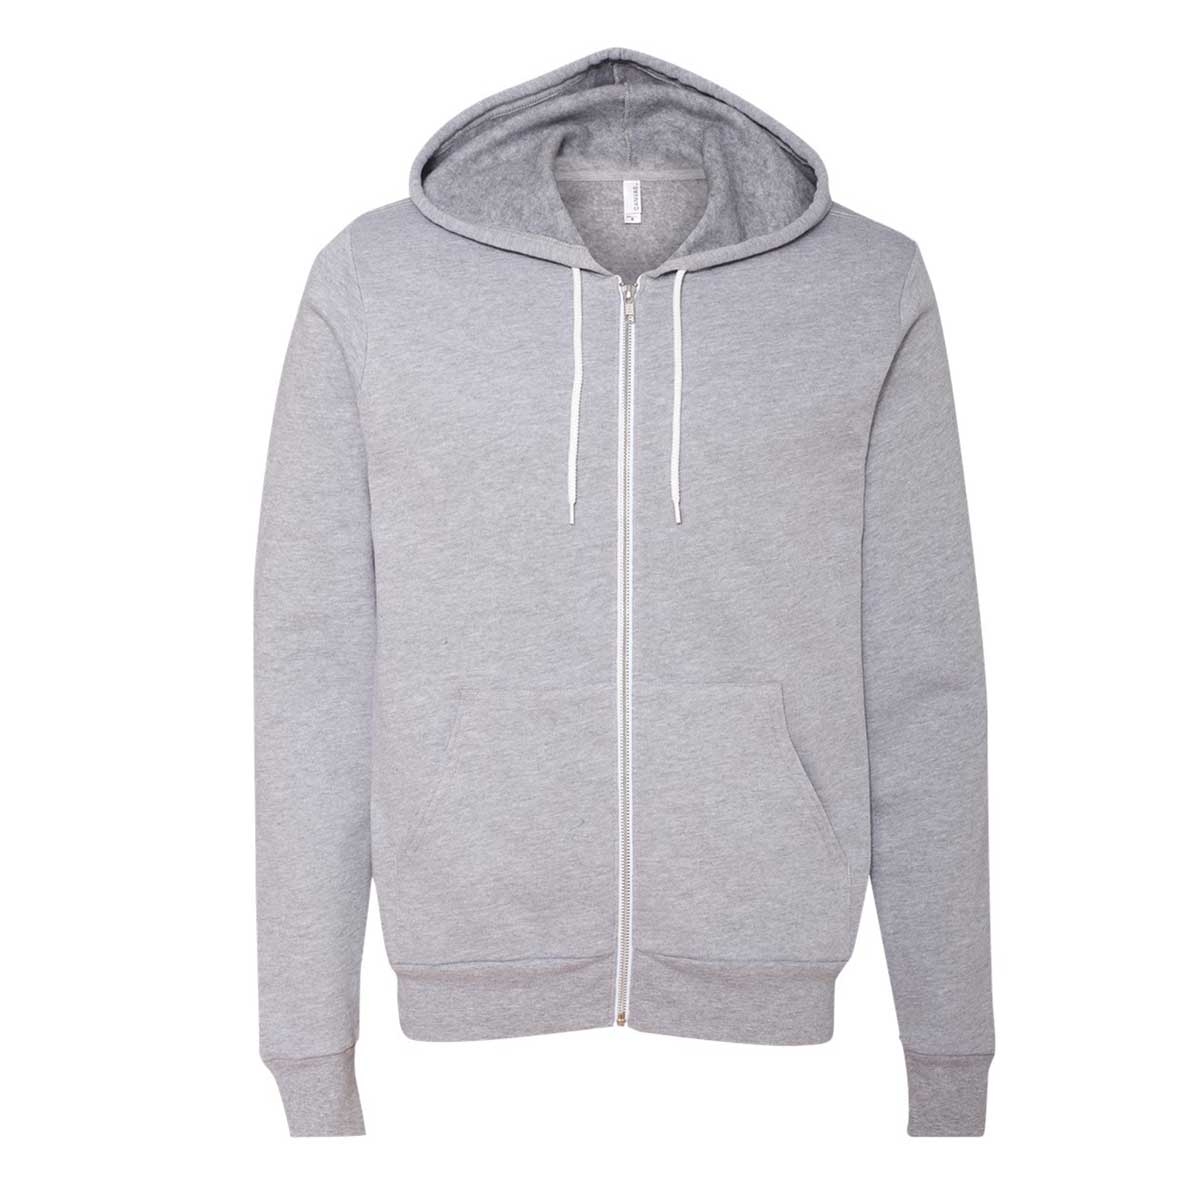 Light gray bella sweatshirt